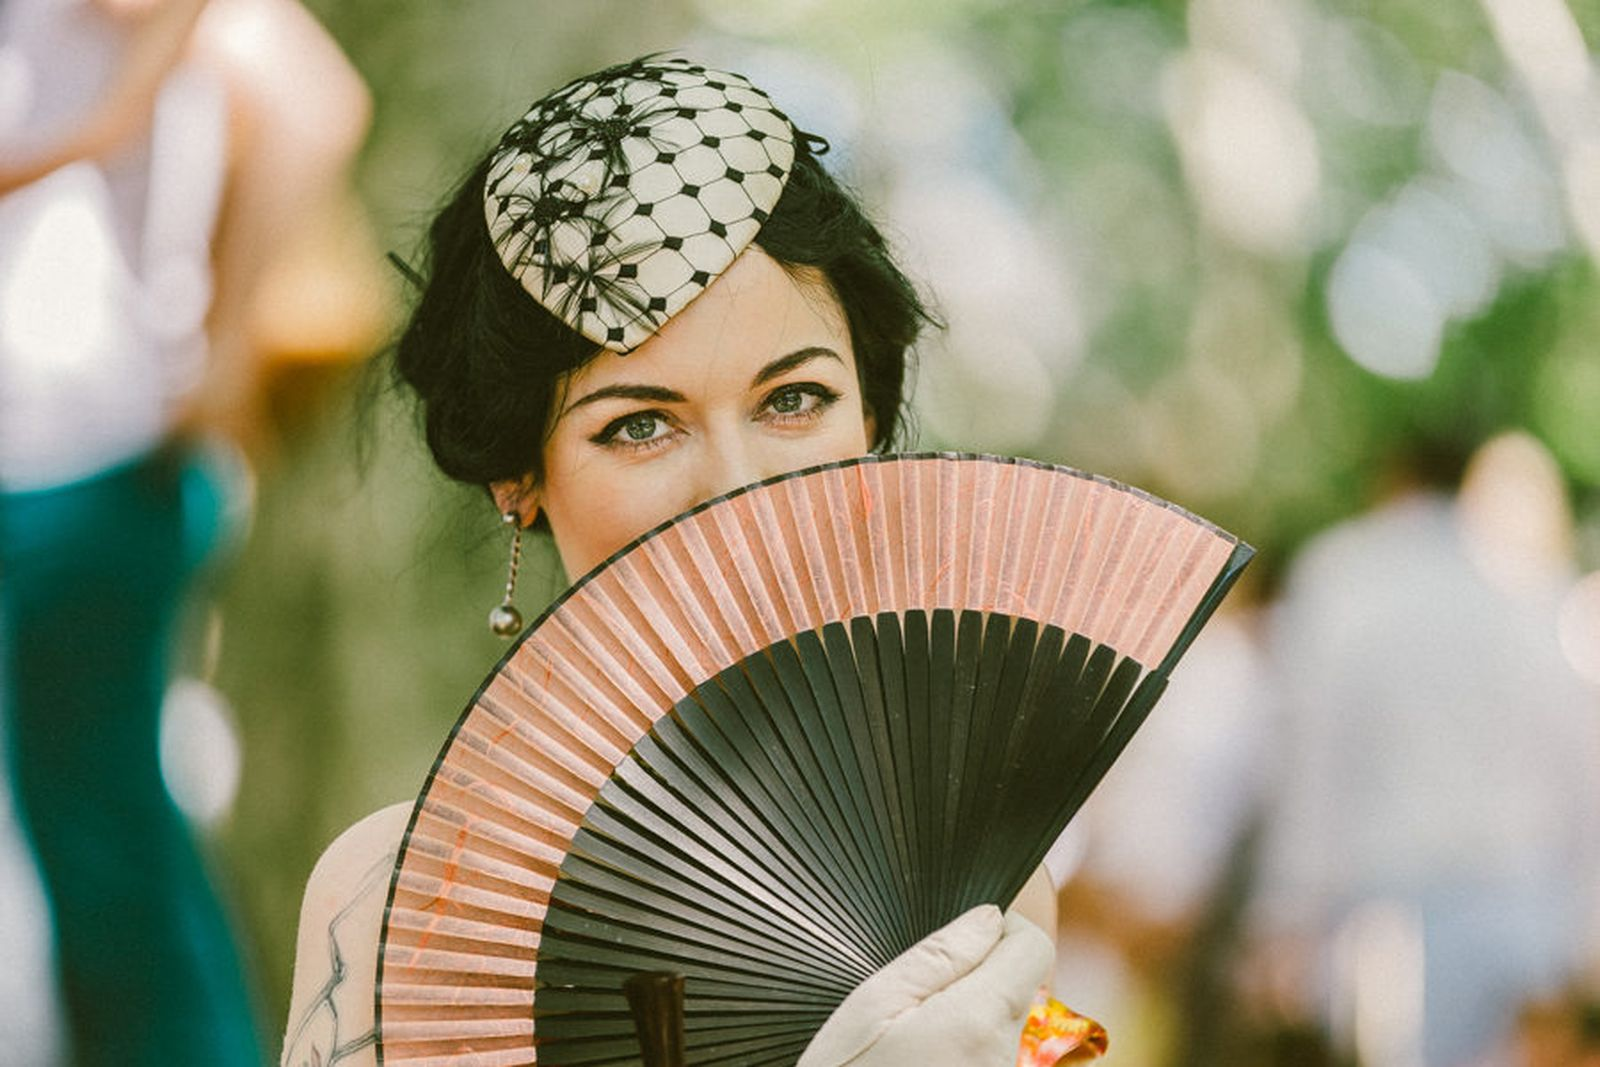 Delicate Hats + Hand Fans